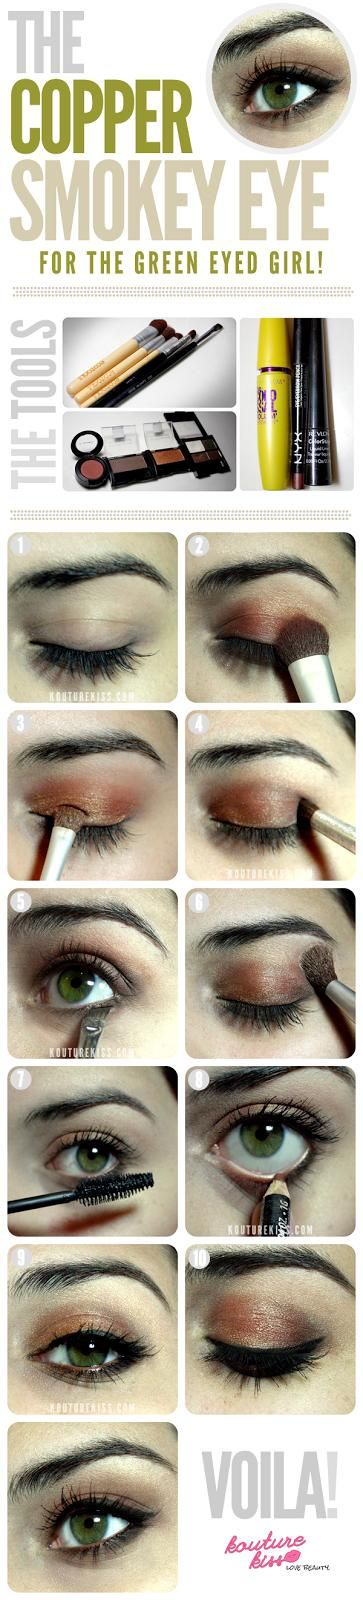 The Copper Smokey Eye For The Green Eyed Girl